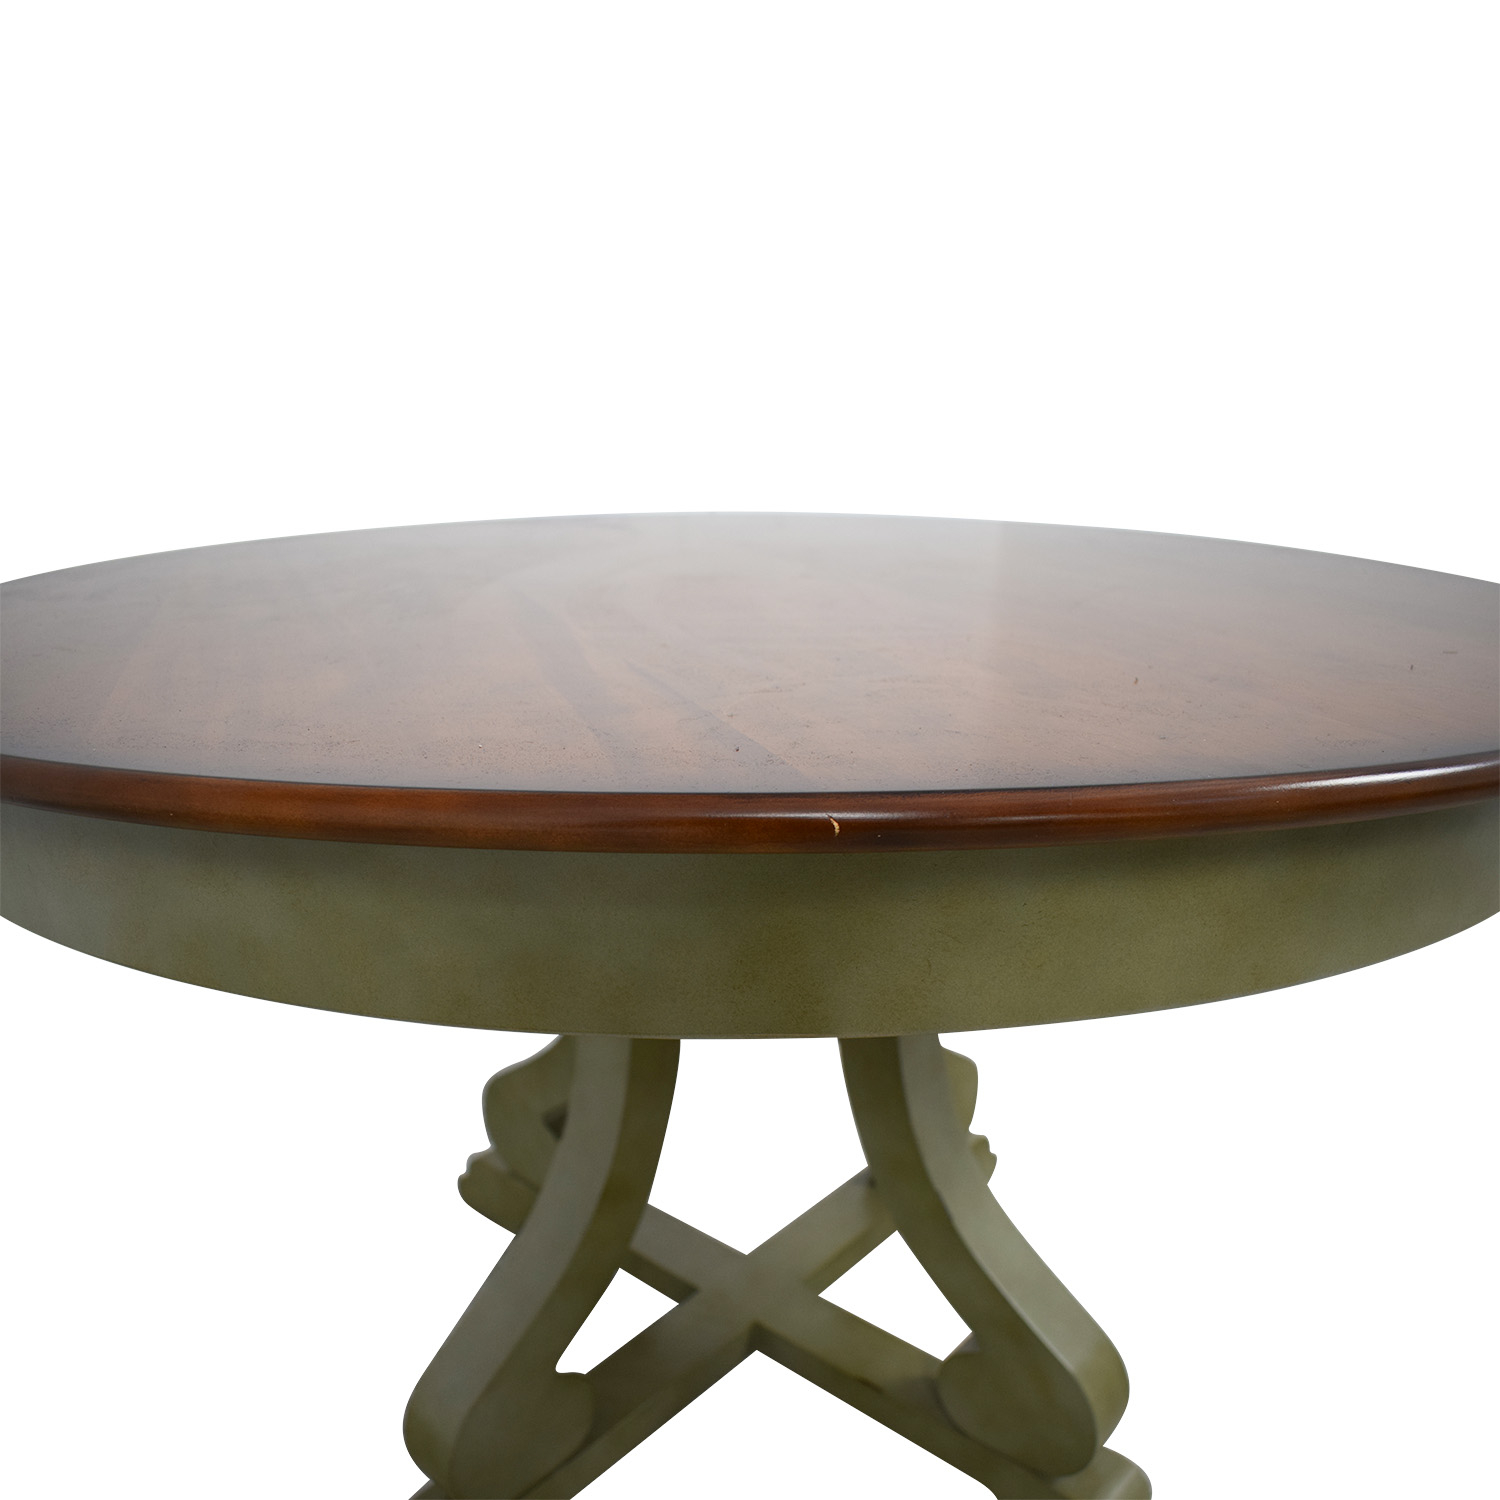 Super 90 Off Pier 1 Pier 1 Imports Green And Wood Round Dining Table Tables Pdpeps Interior Chair Design Pdpepsorg